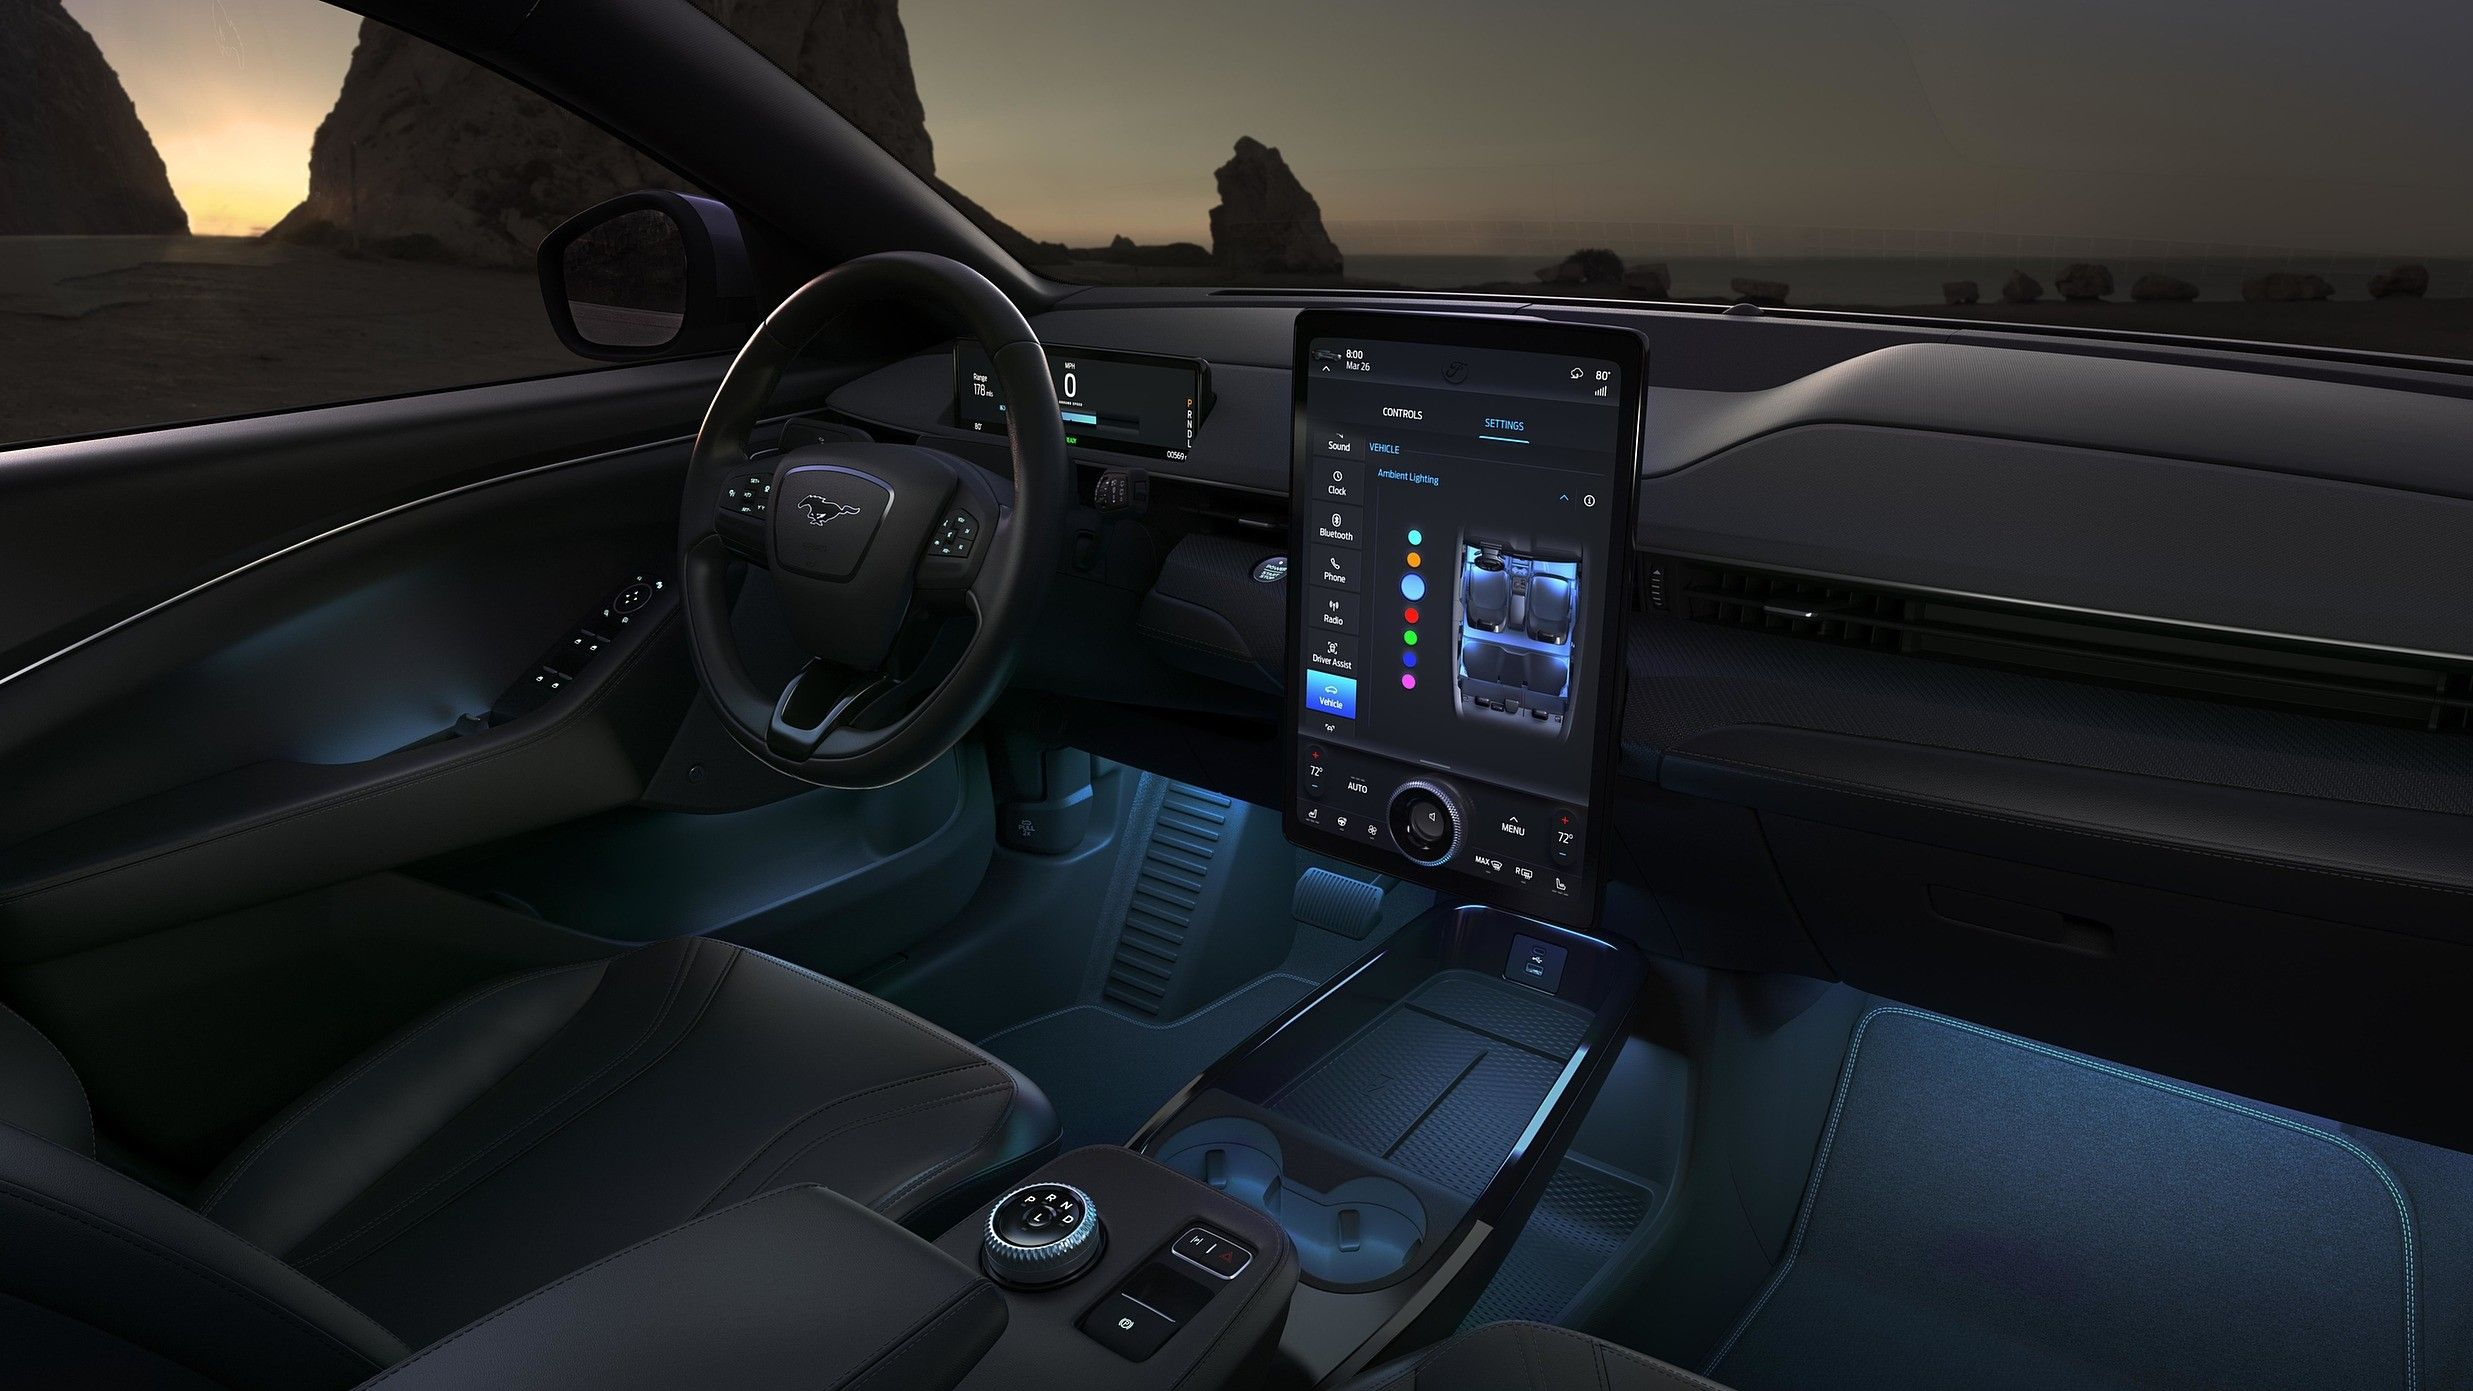 2021 ford mustang mach e interior dashboard view 3